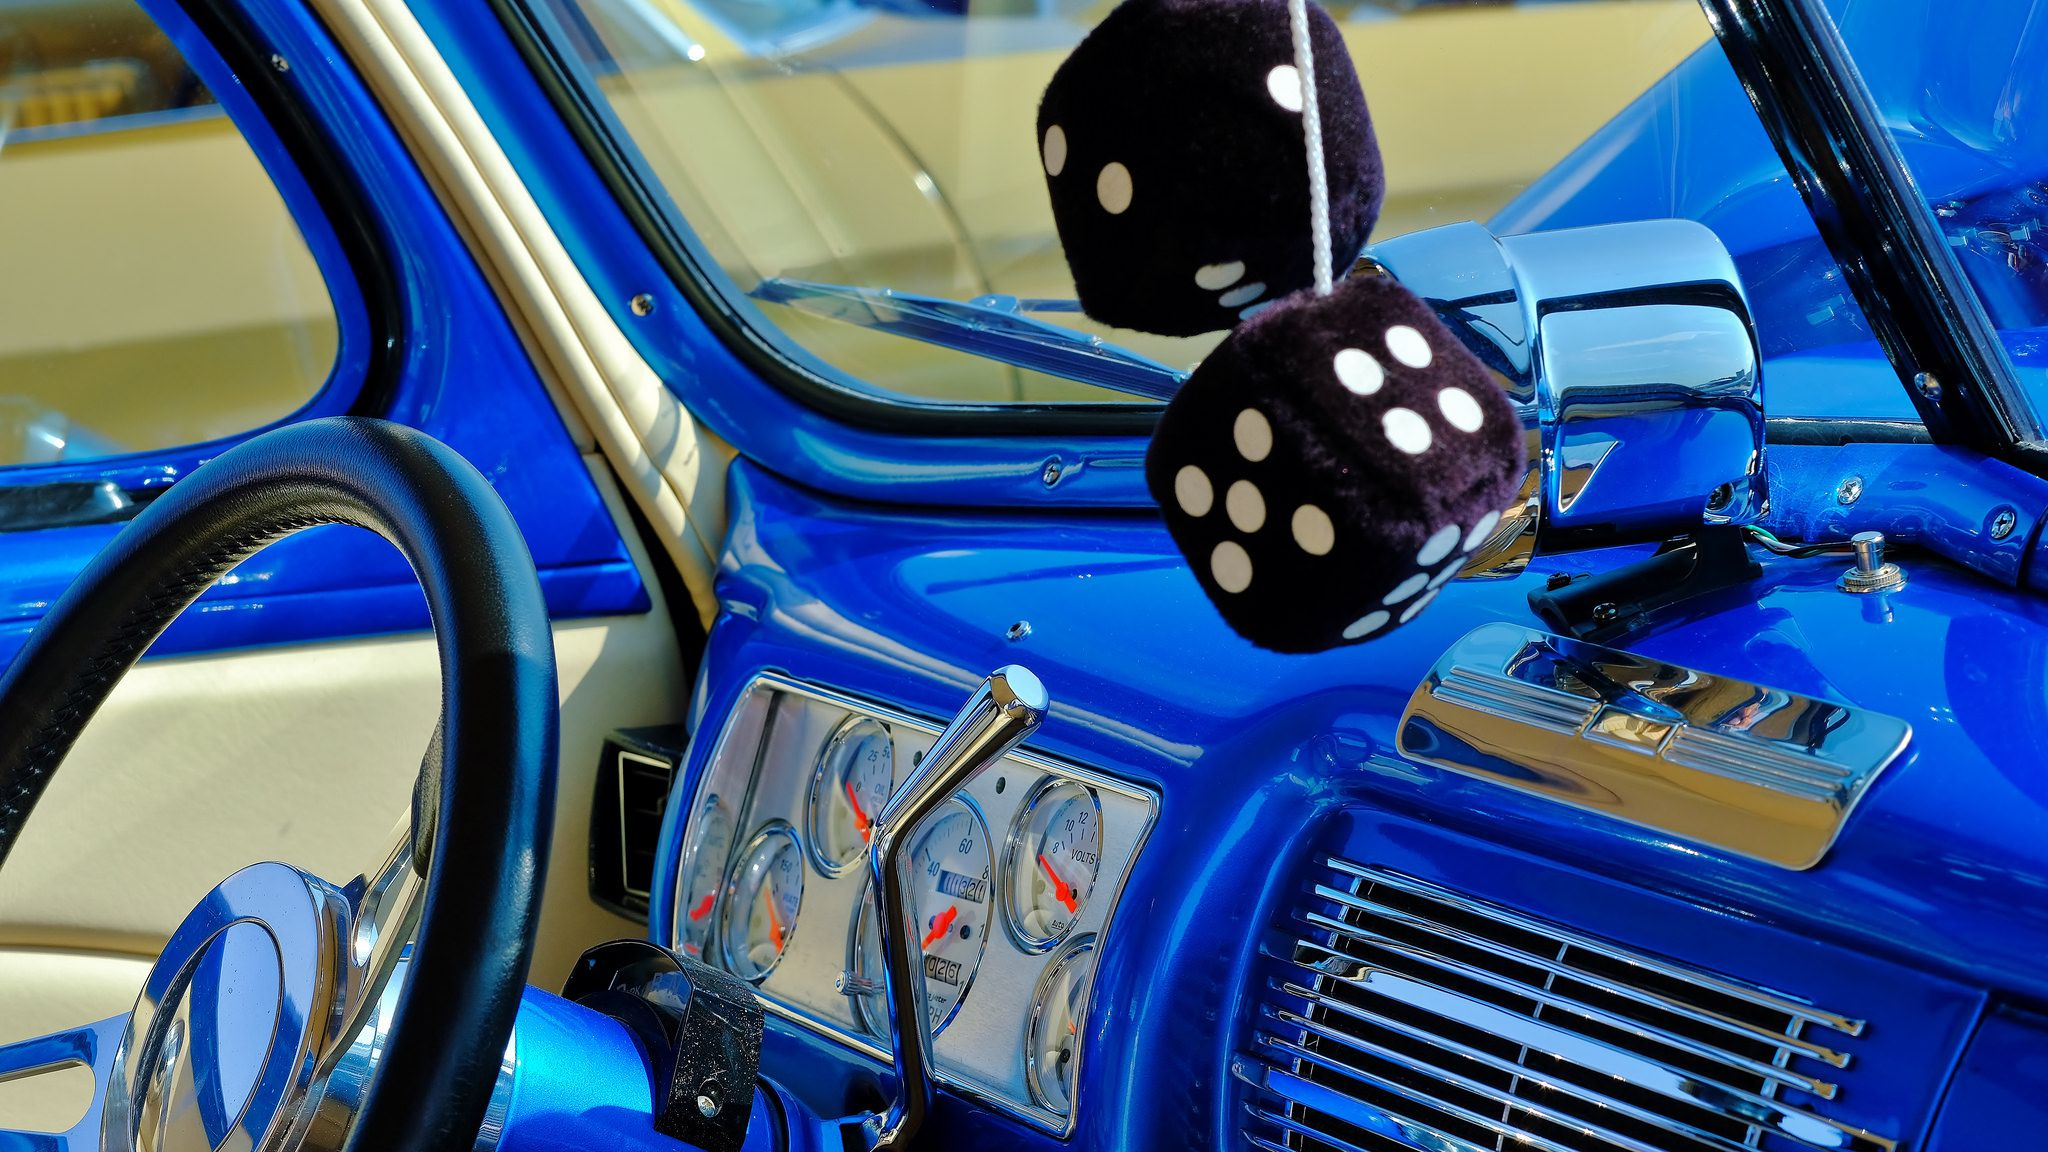 Hot Wheels Tires >> The Surprising History and Symbolism of Fuzzy Dice